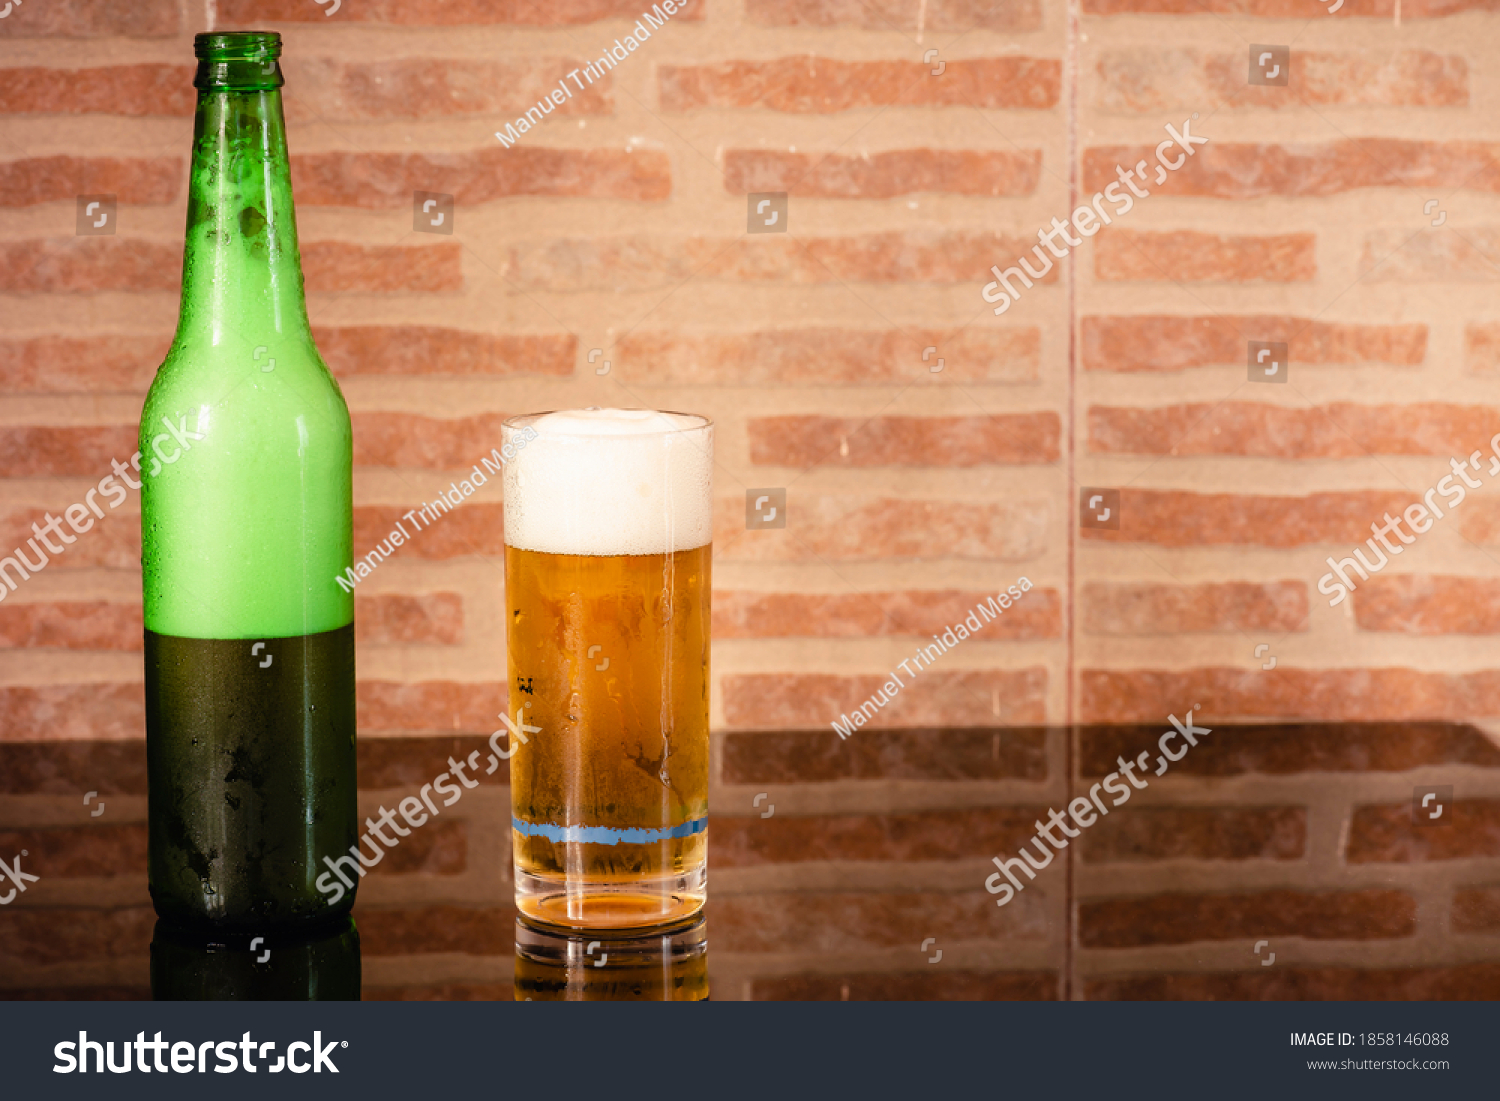 stock-photo-glass-of-beer-and-a-green-bo